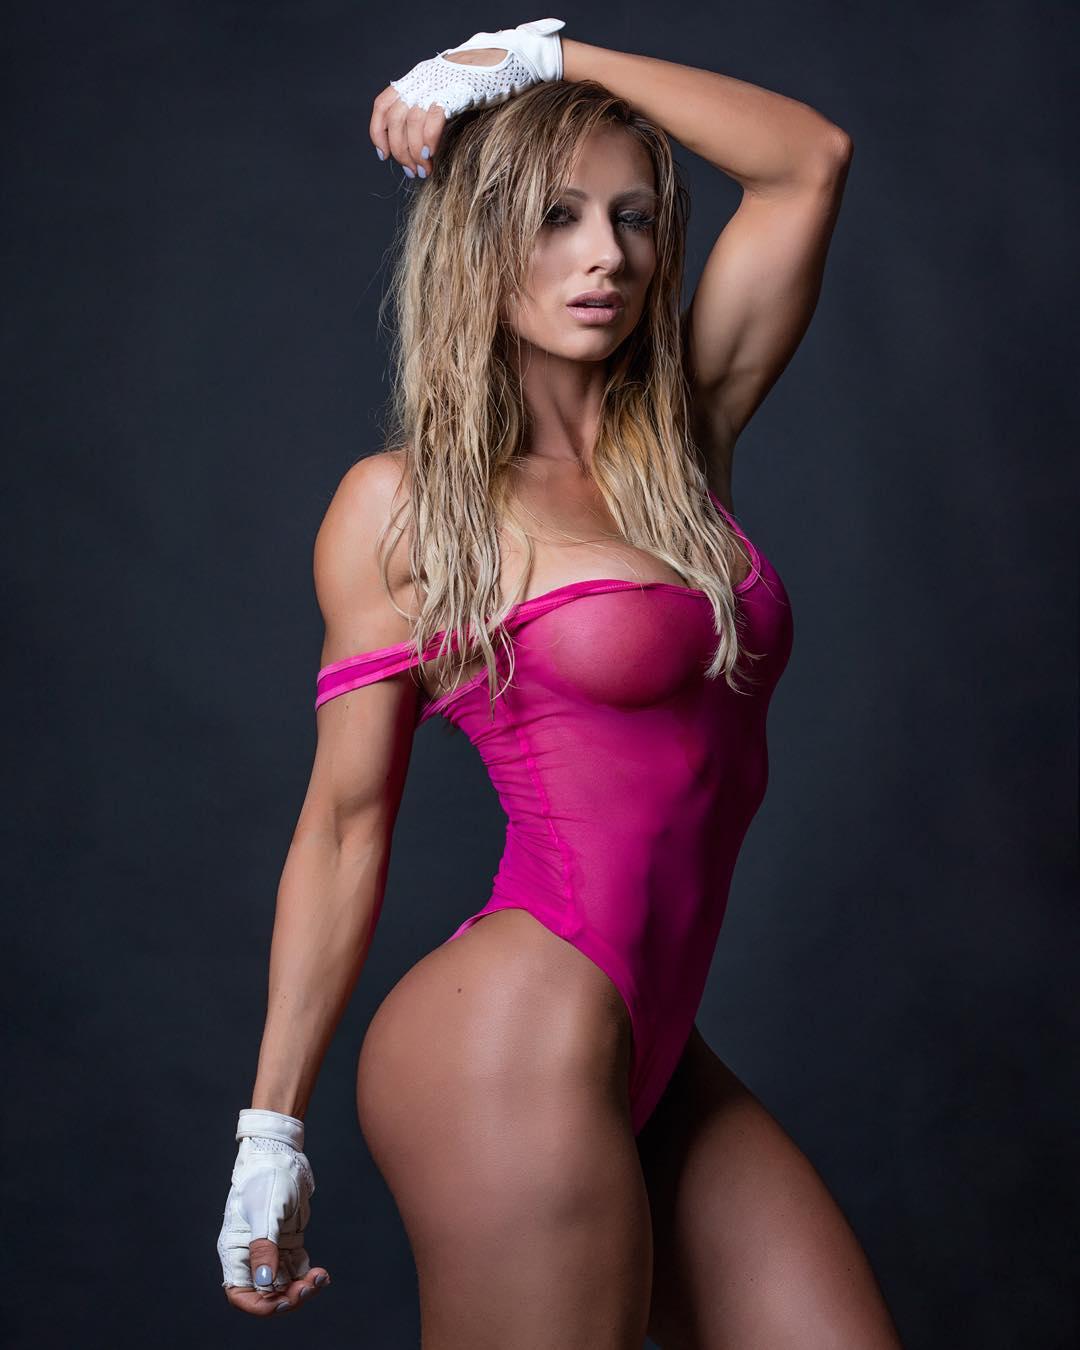 Top 50 Most Attractive And Inspiring Female Fitness Models